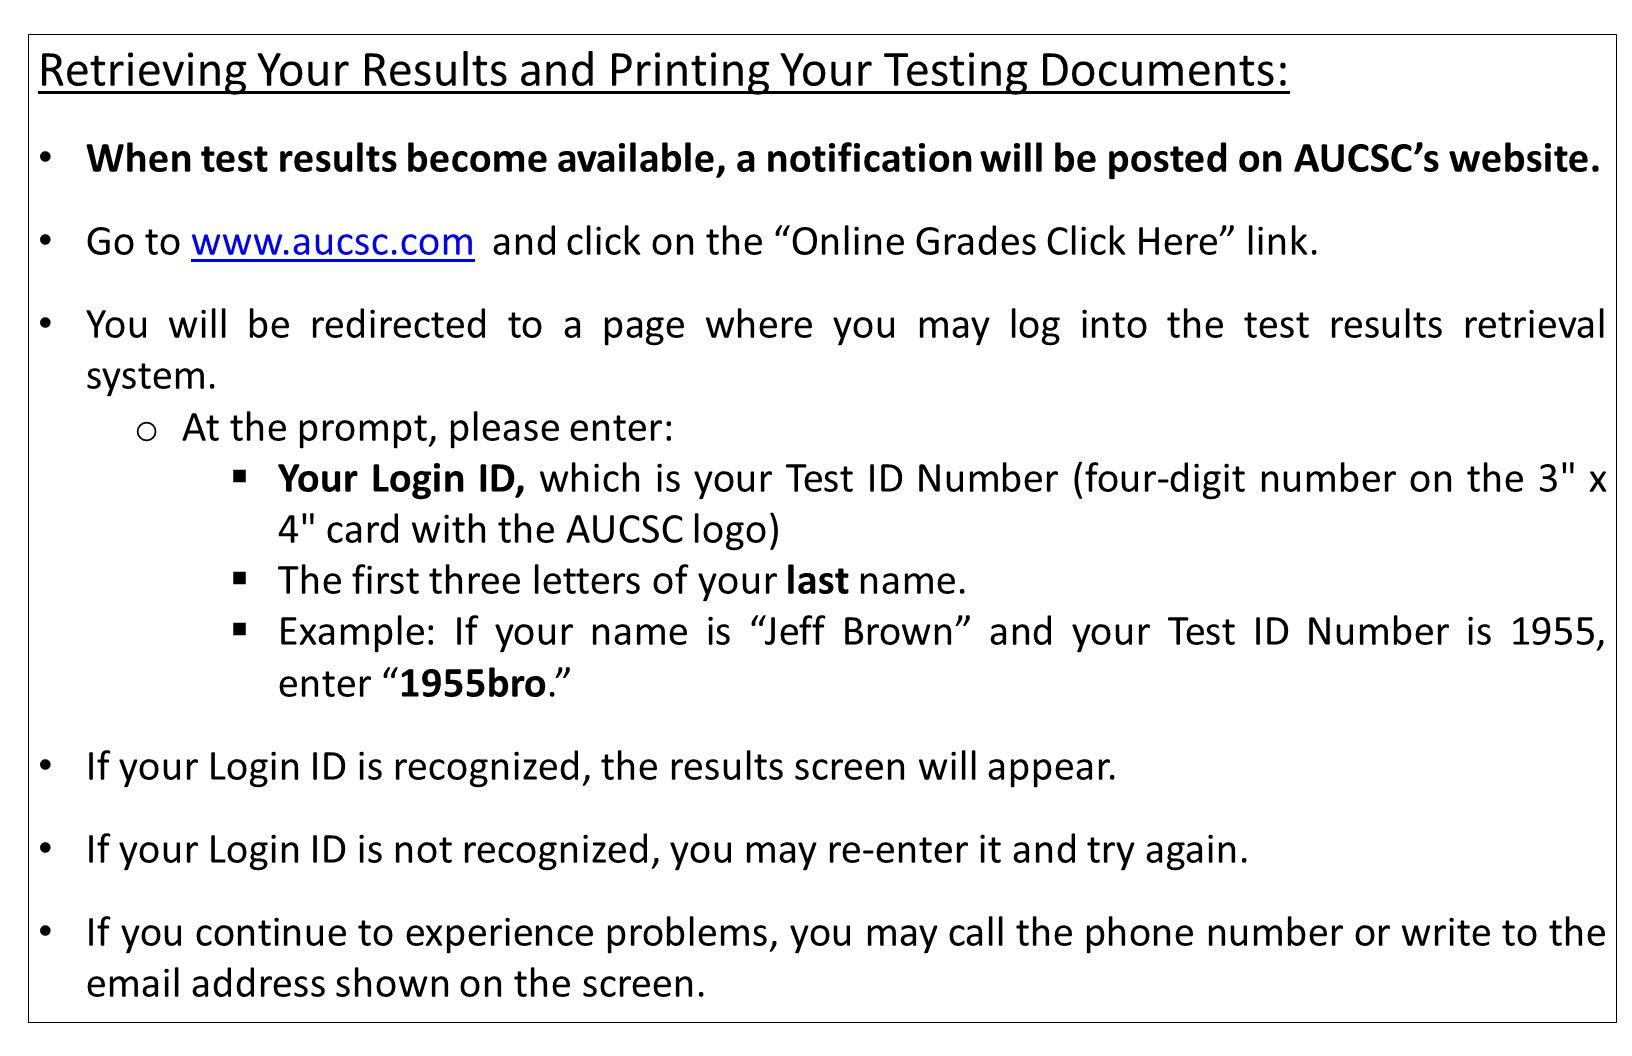 Retrieving Your Results and Printing Your Testing Documents: